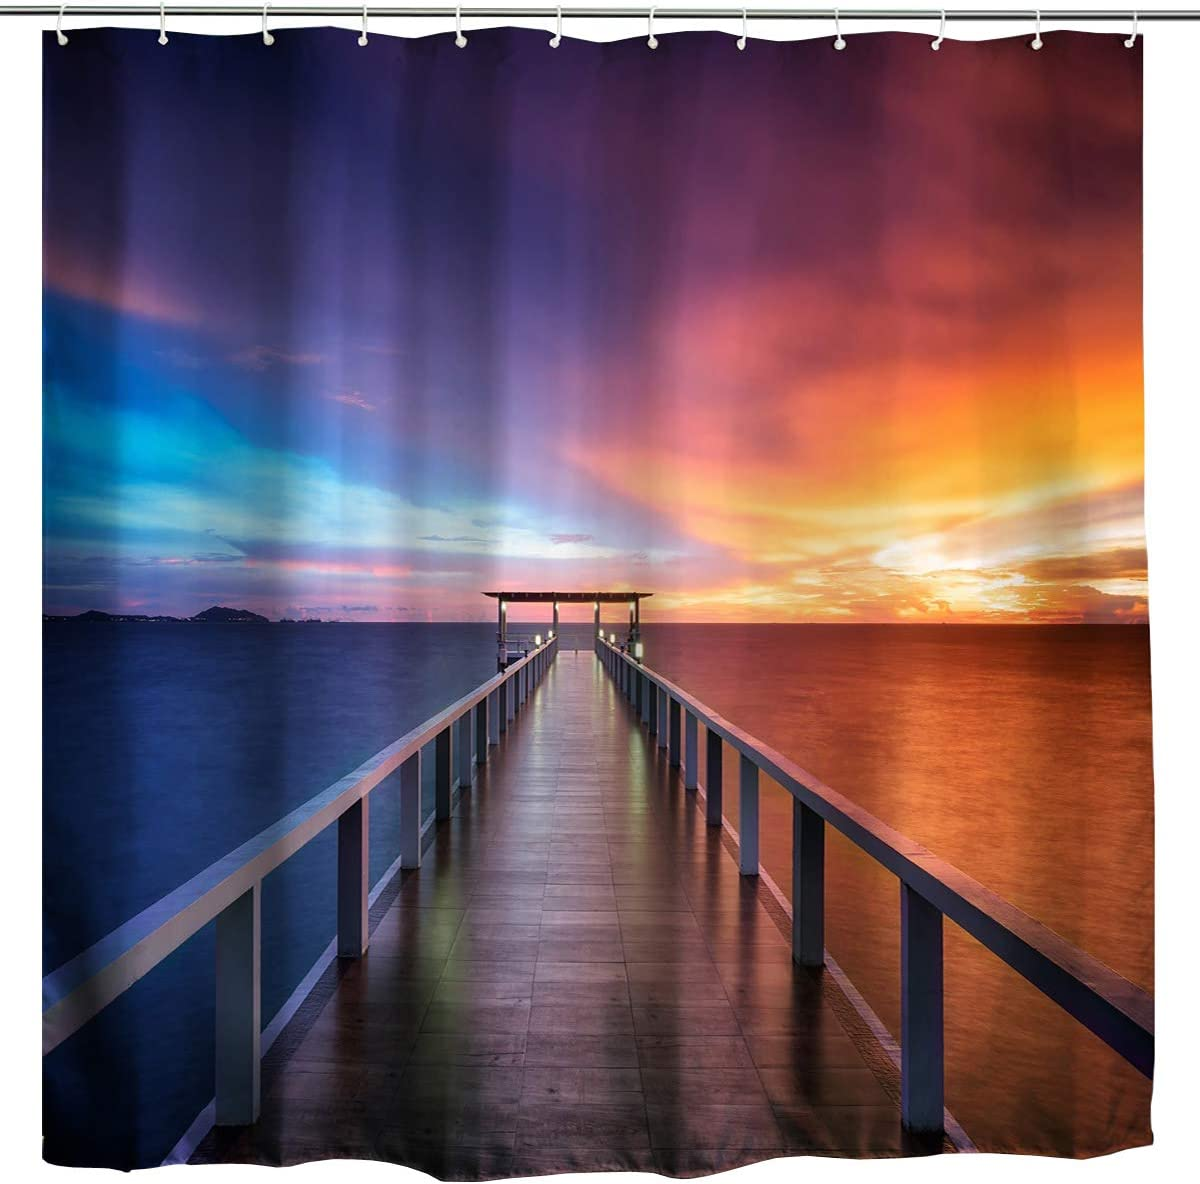 BROSHAN Ocean Sunset Shower Curtain, Nautical Seaside Wooden Bridge on Ocean Abstract Art Picture Theme, Romantic Nature Fabric Bathroom Accessories Set, 72 inch, Blue Orange Brown